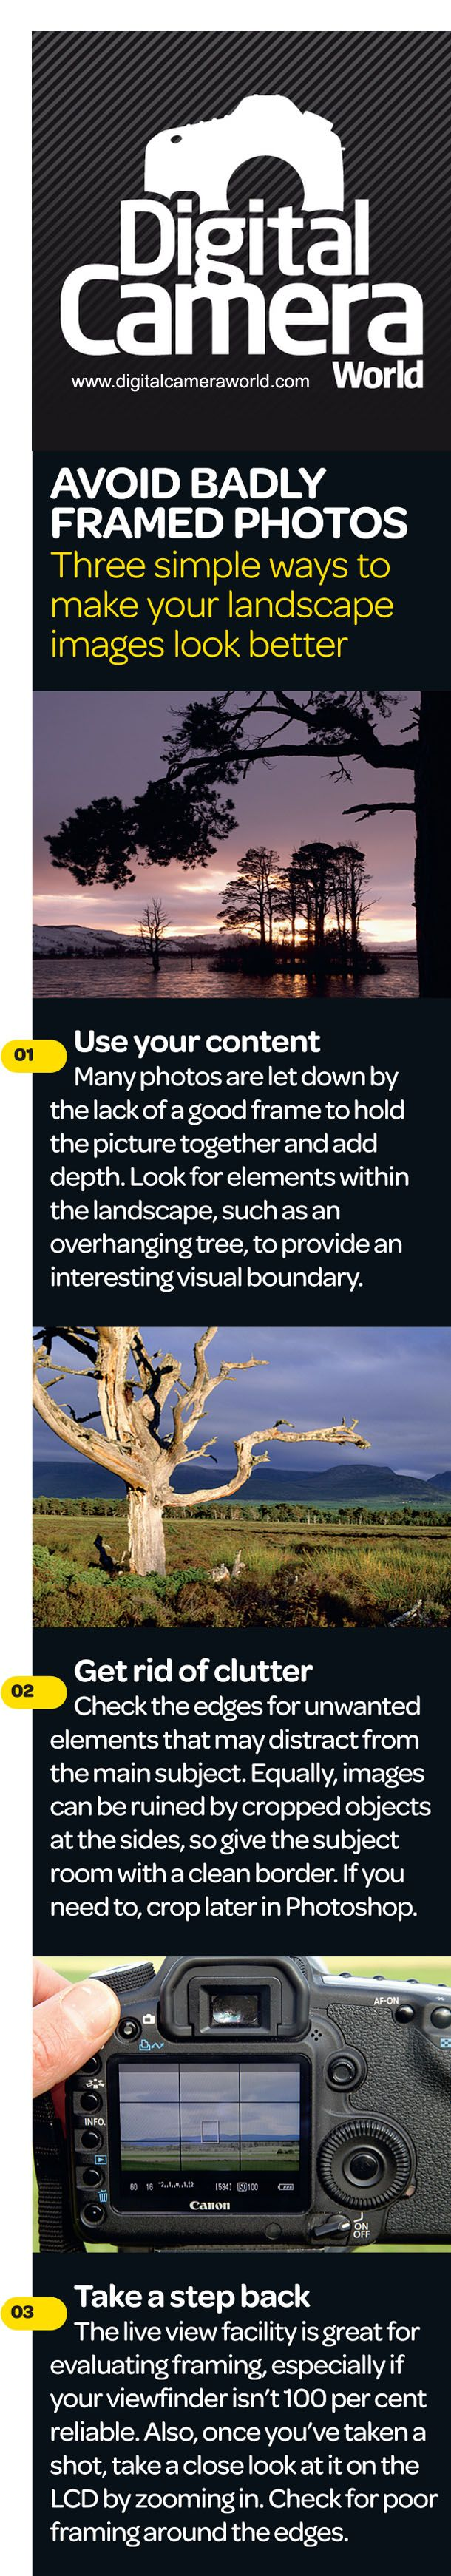 Landscape photography: cheat sheet for learning how to avoid badly frame landscape photos.